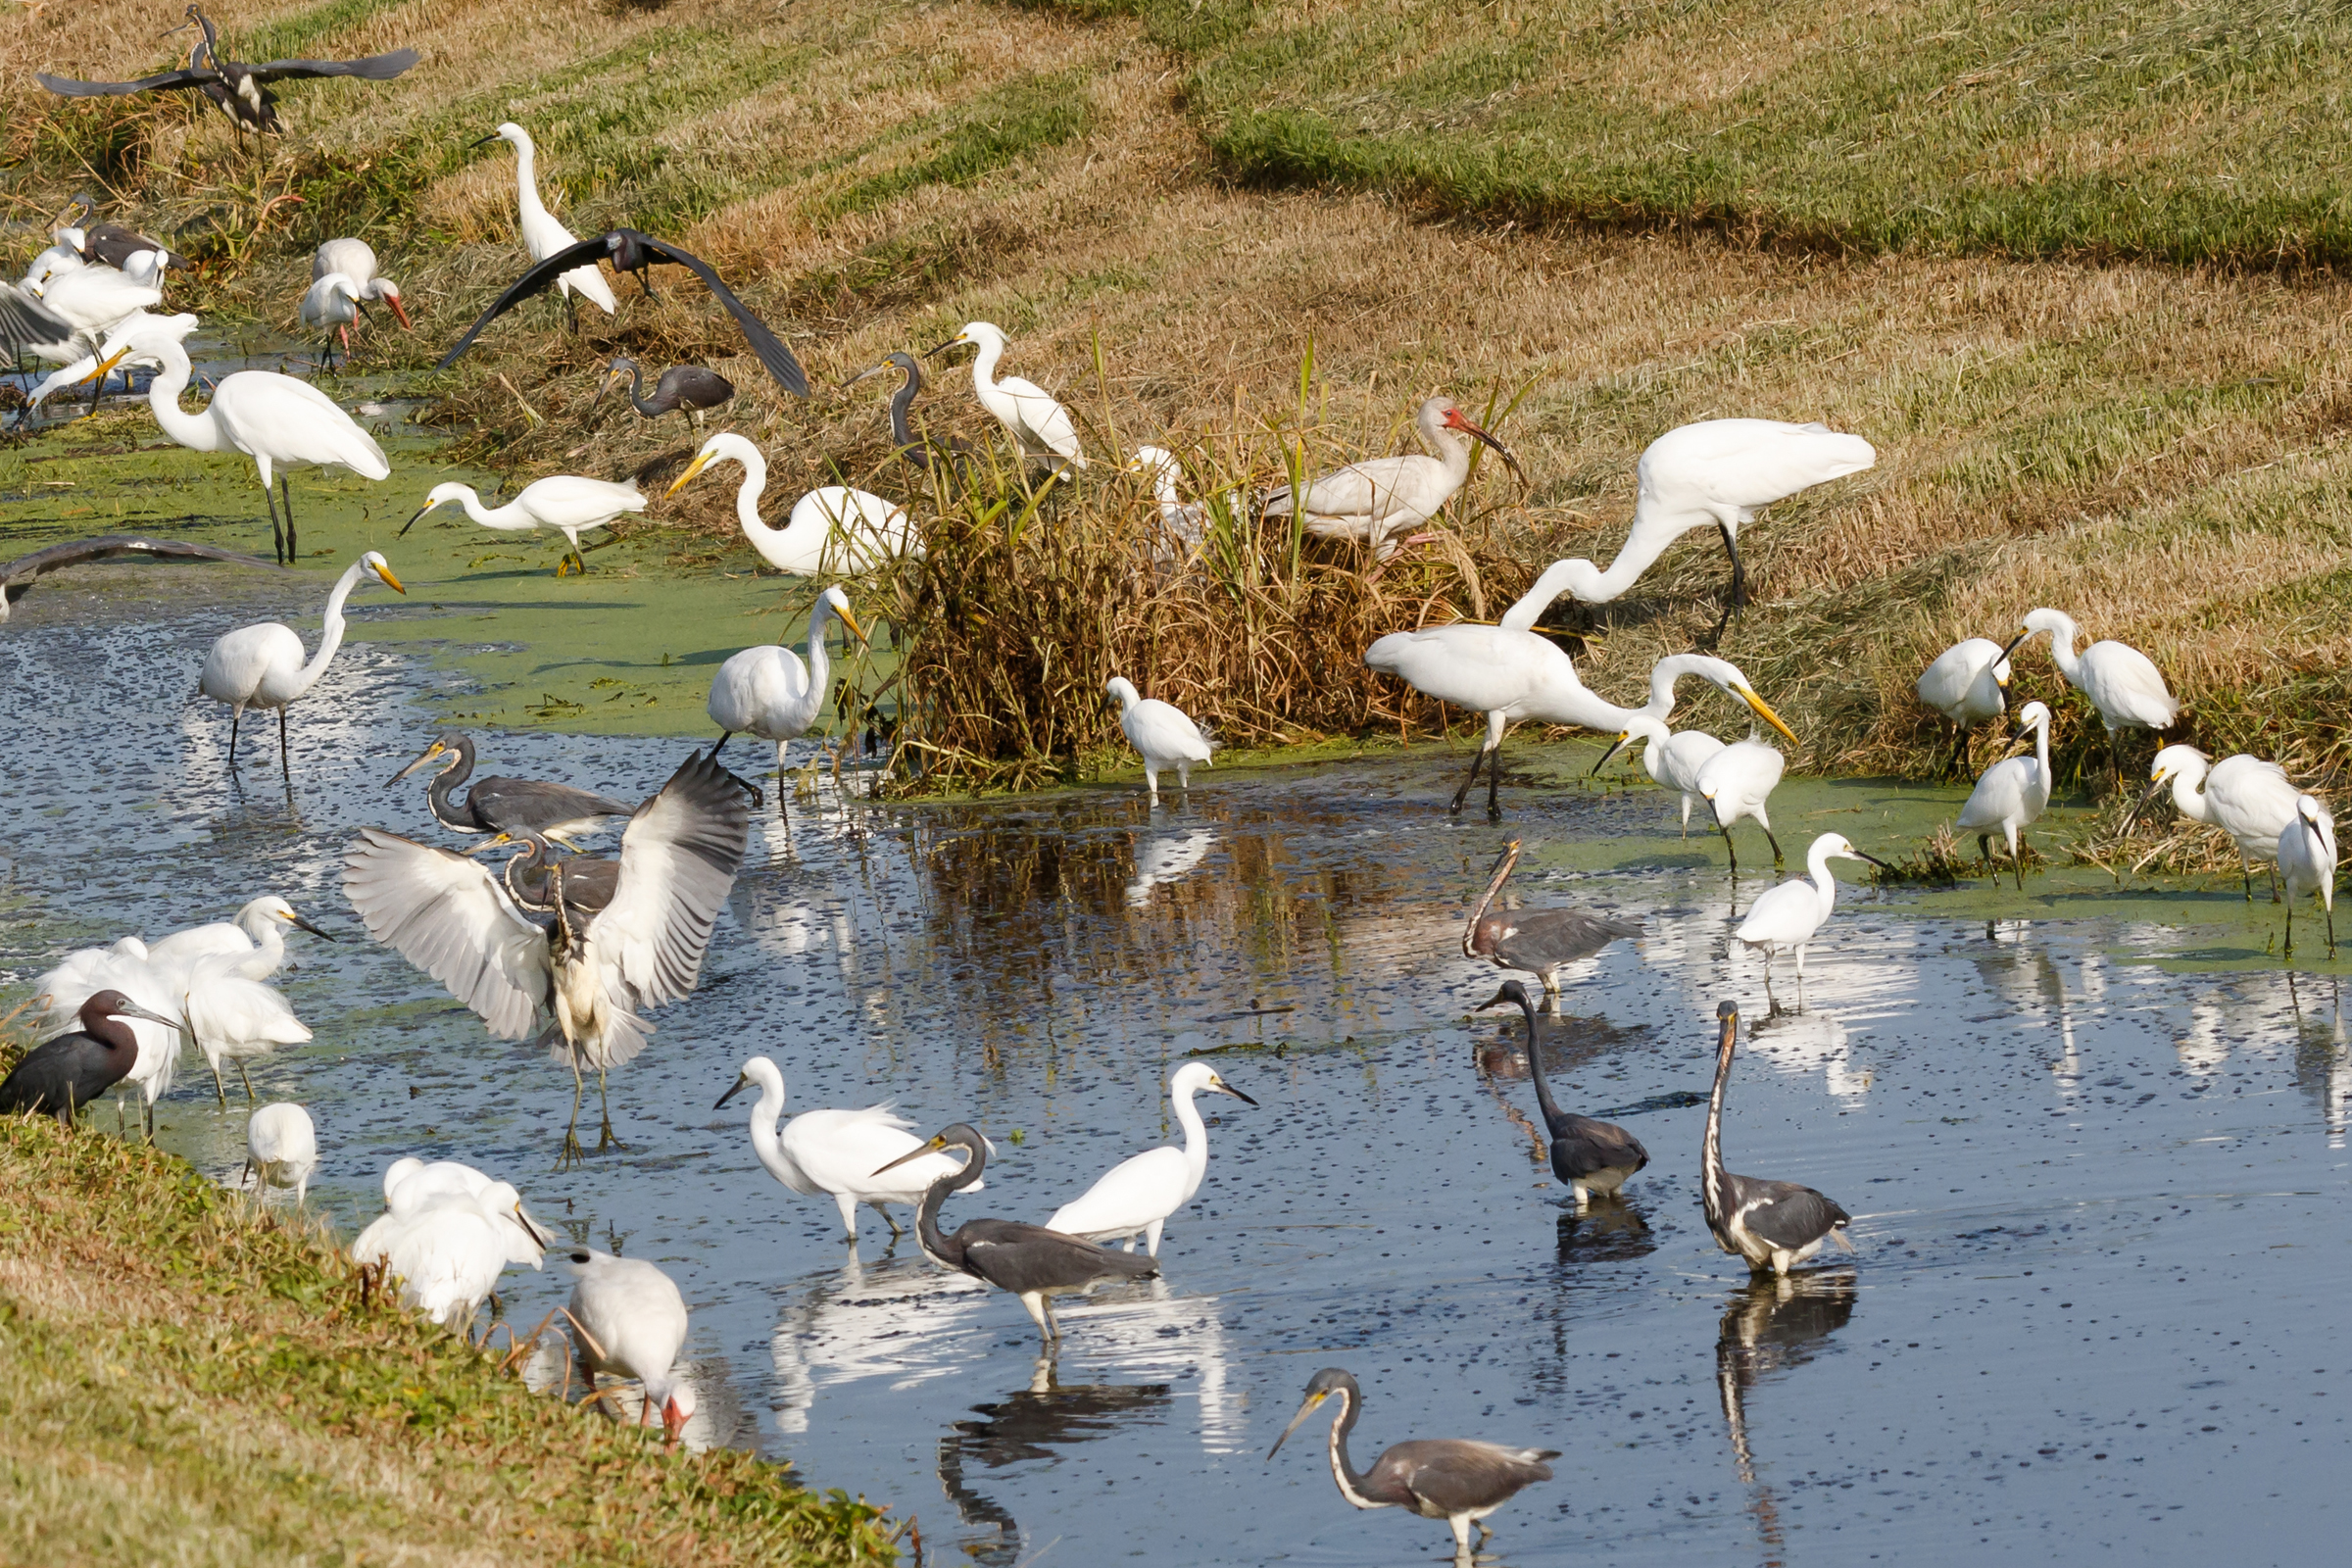 Various birds in pond image